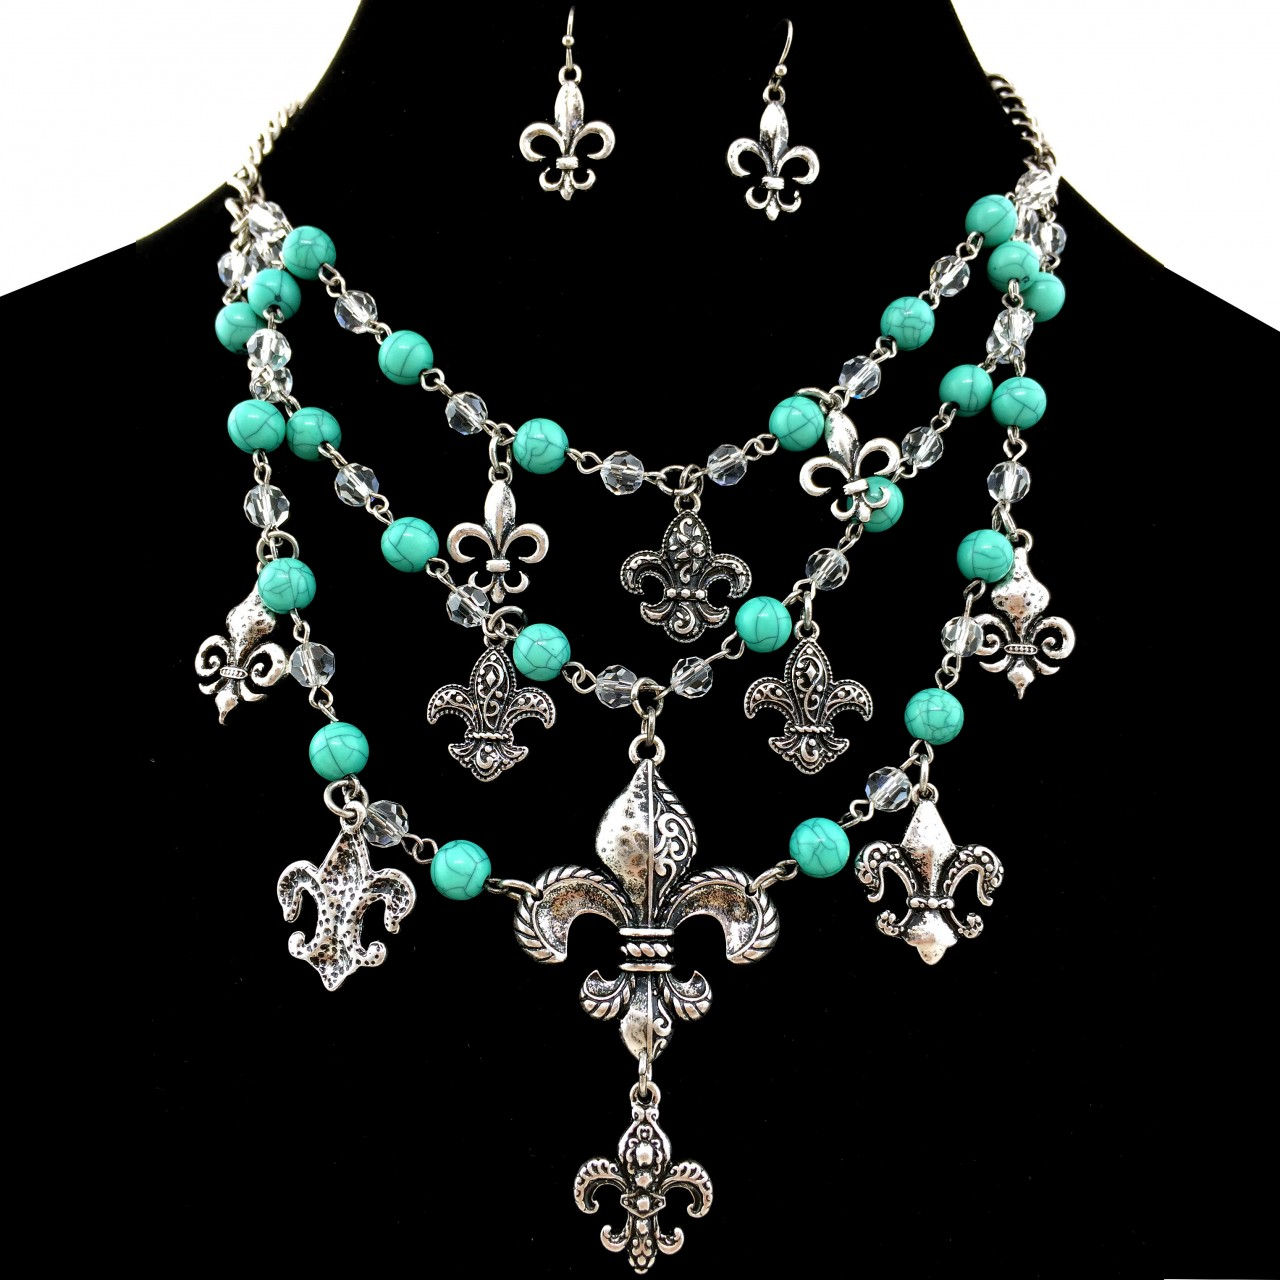 Western Fleur De Lis Turquoise Chain Necklace With